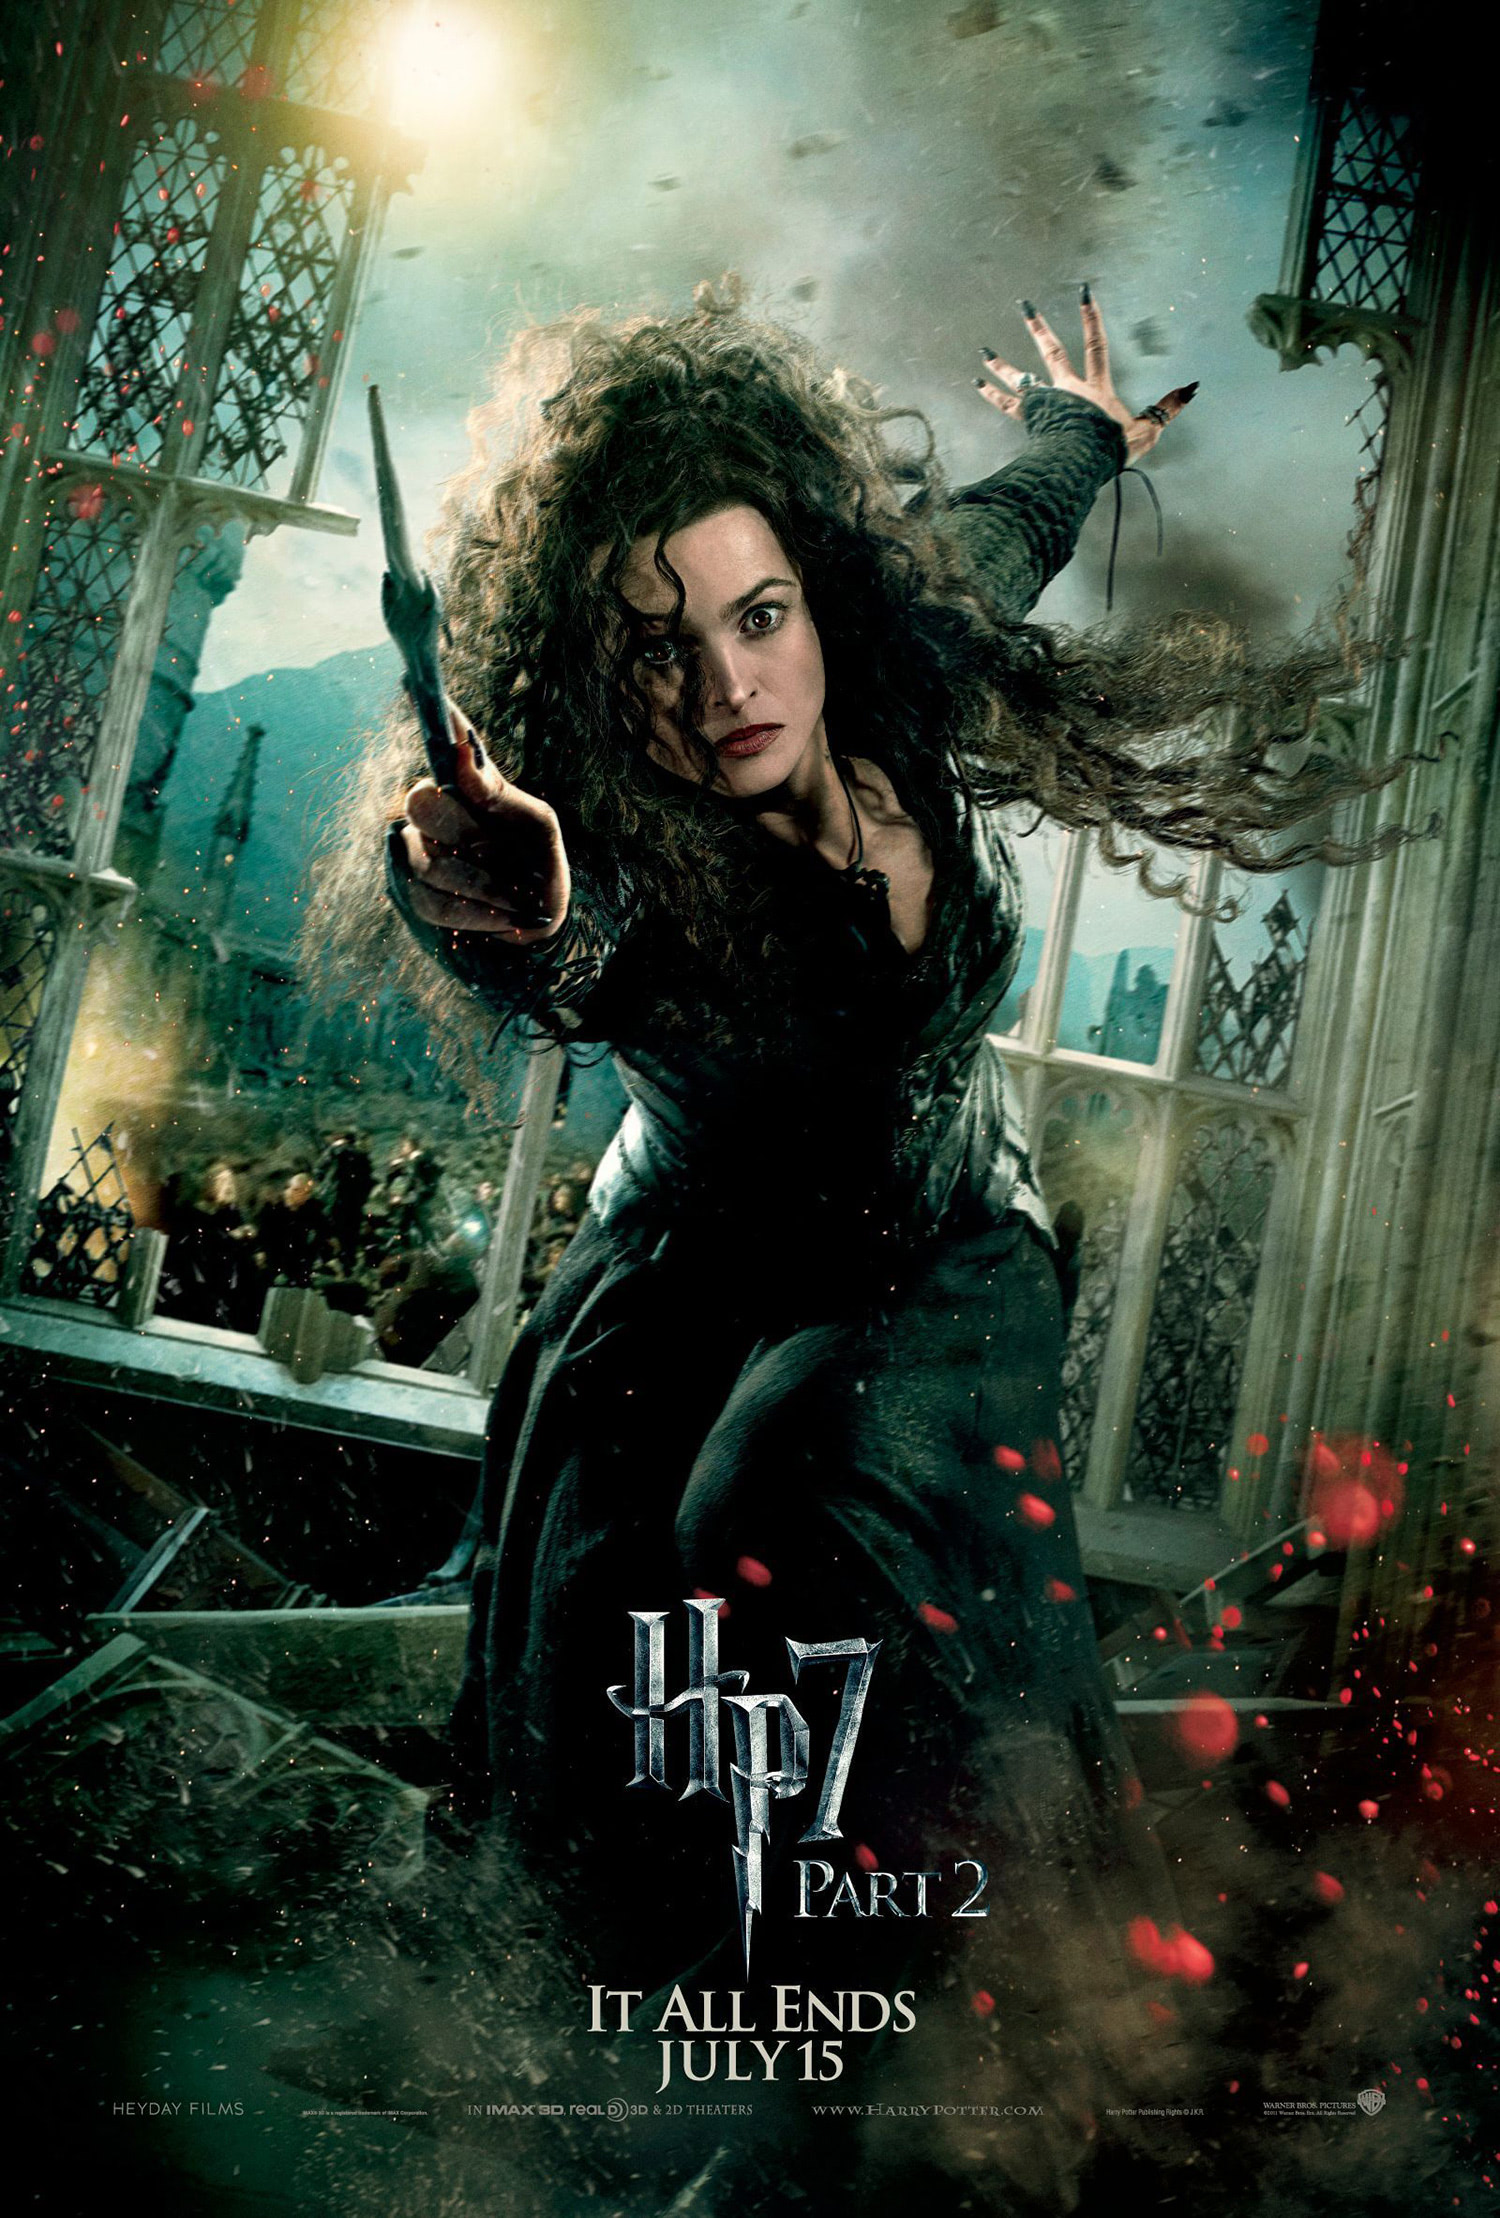 'Deathly Hallows: Part 2' Bellatrix poster